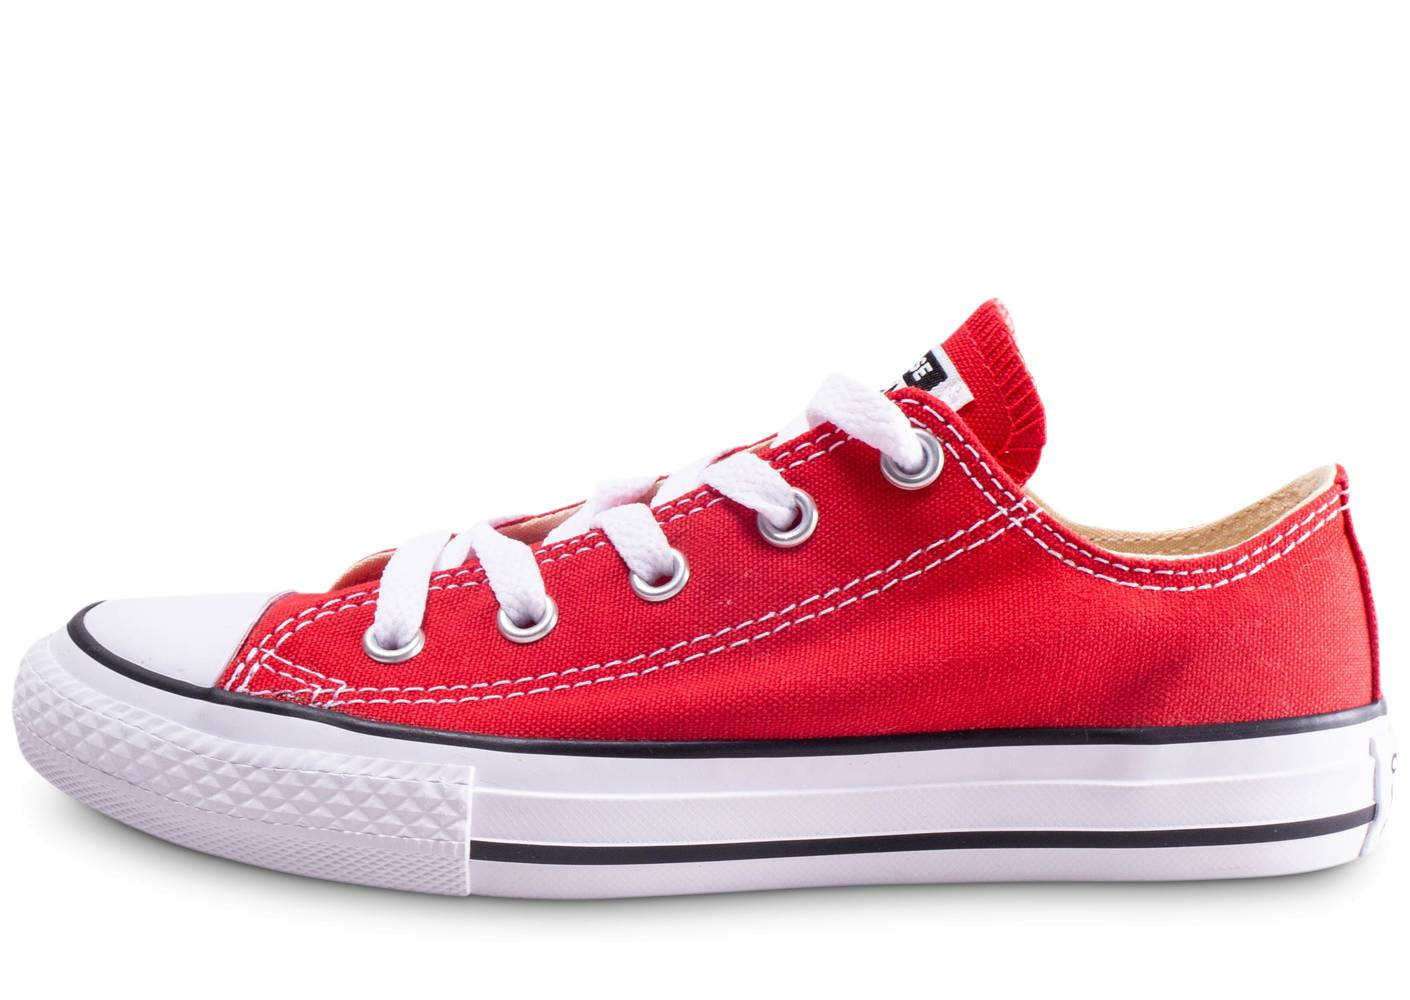 Converse Baskets Converse Chuck Taylor All Star Enfant Basse Rouge 35